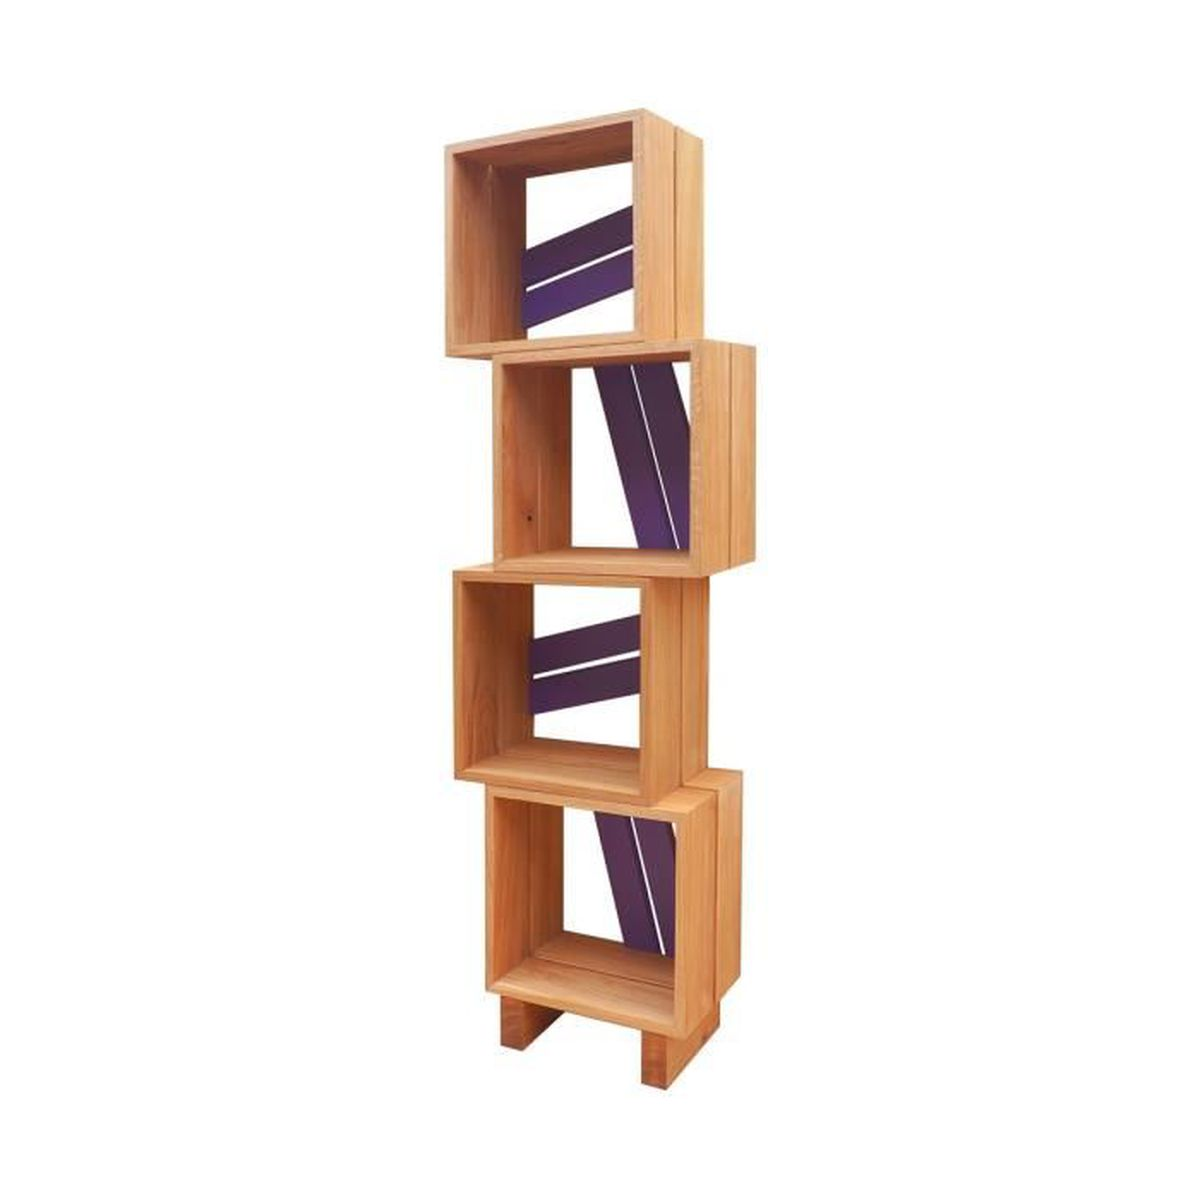 meuble biblioth que modulable 4 casiers bois et couleur violet achat vente biblioth que. Black Bedroom Furniture Sets. Home Design Ideas